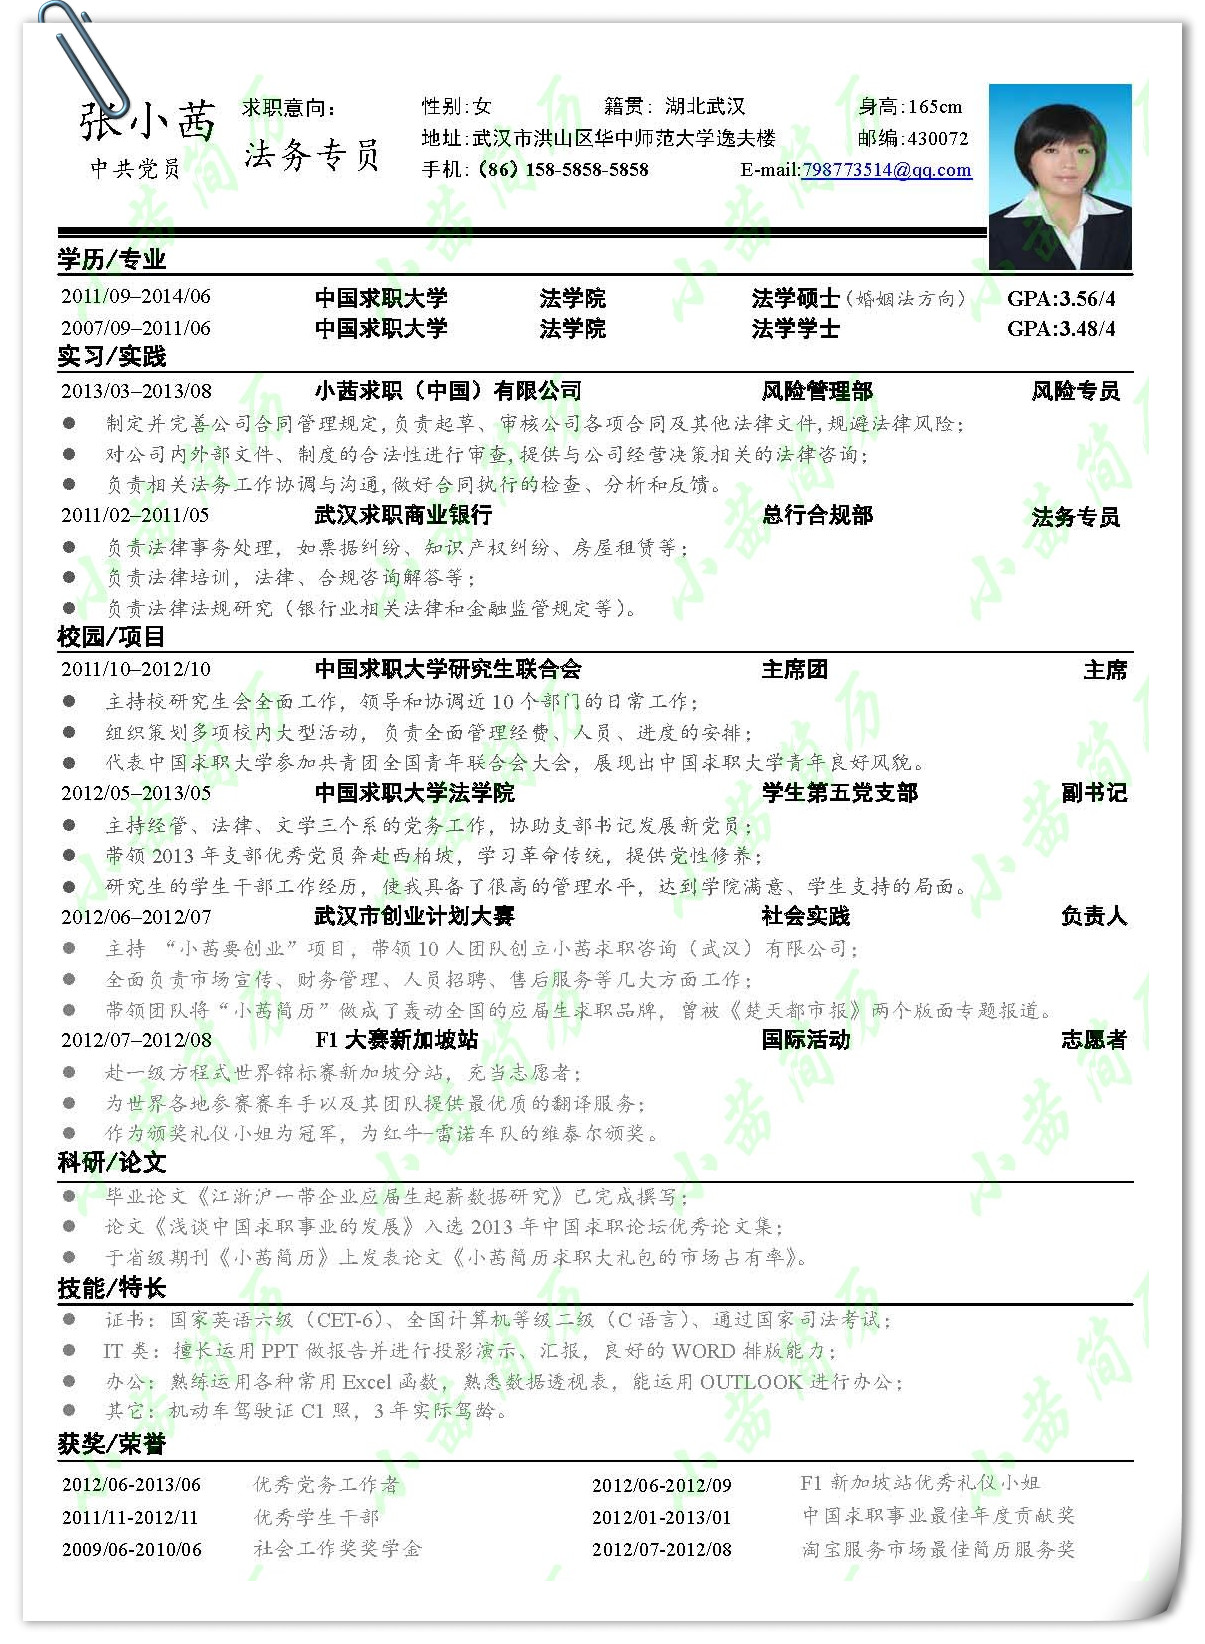 this cv resume image from